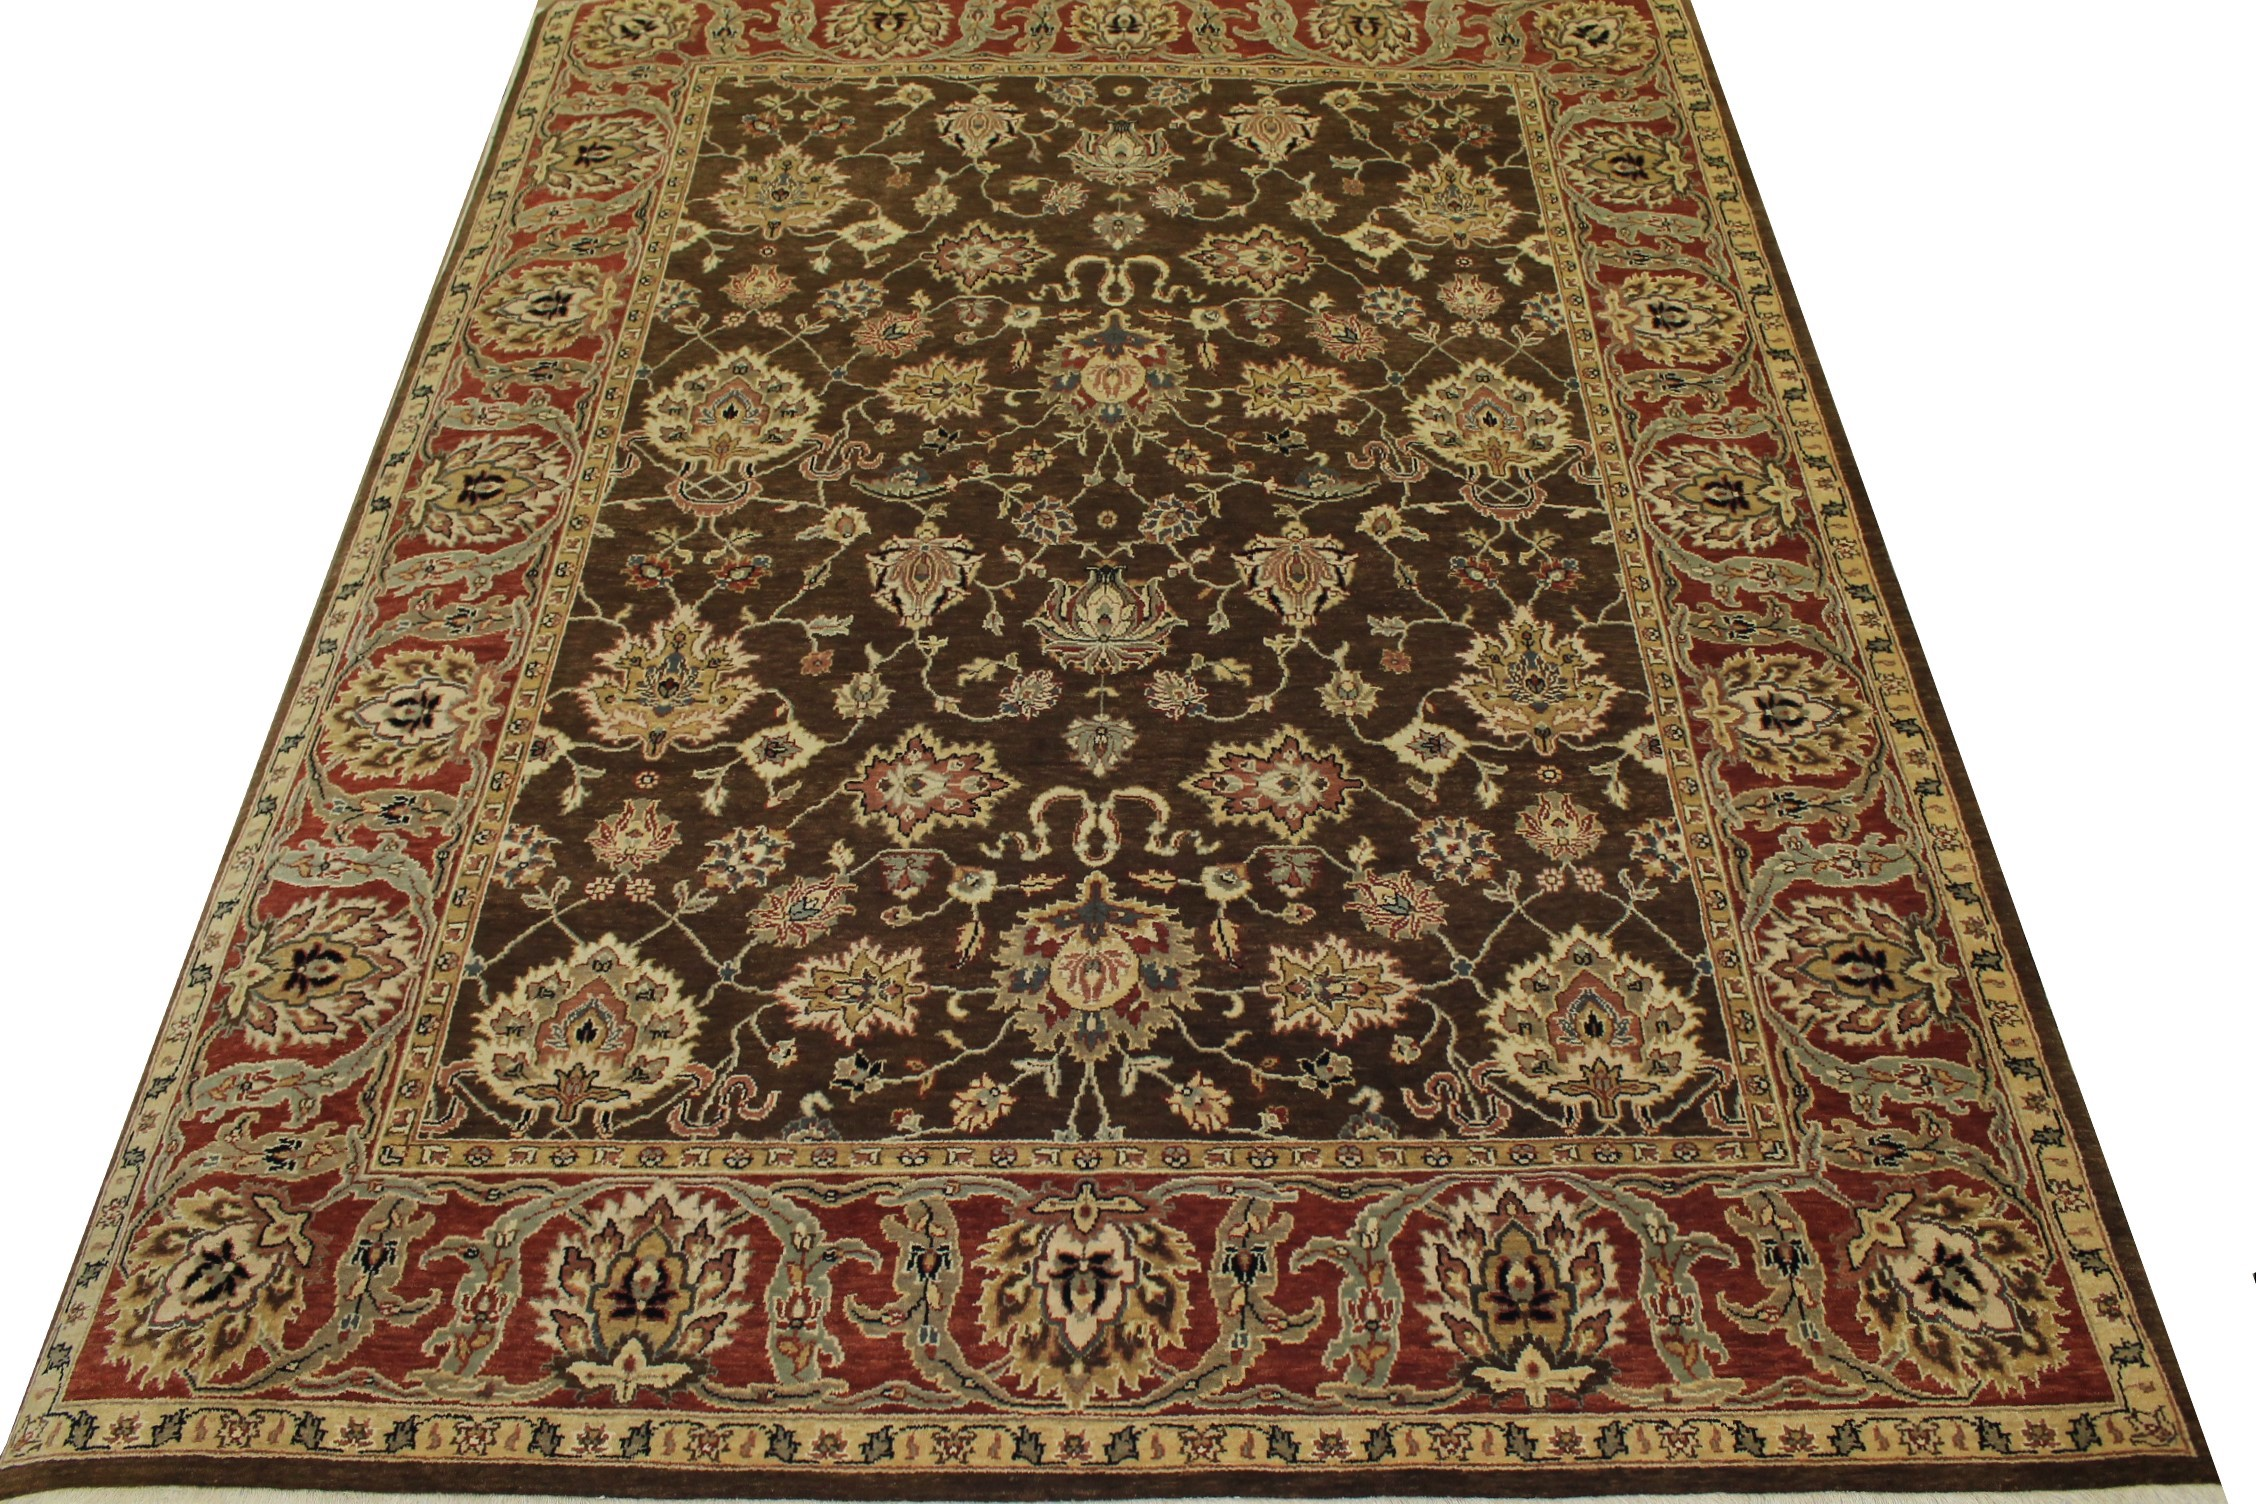 8x10 Traditional Hand Knotted Wool Area Rug - MR10871